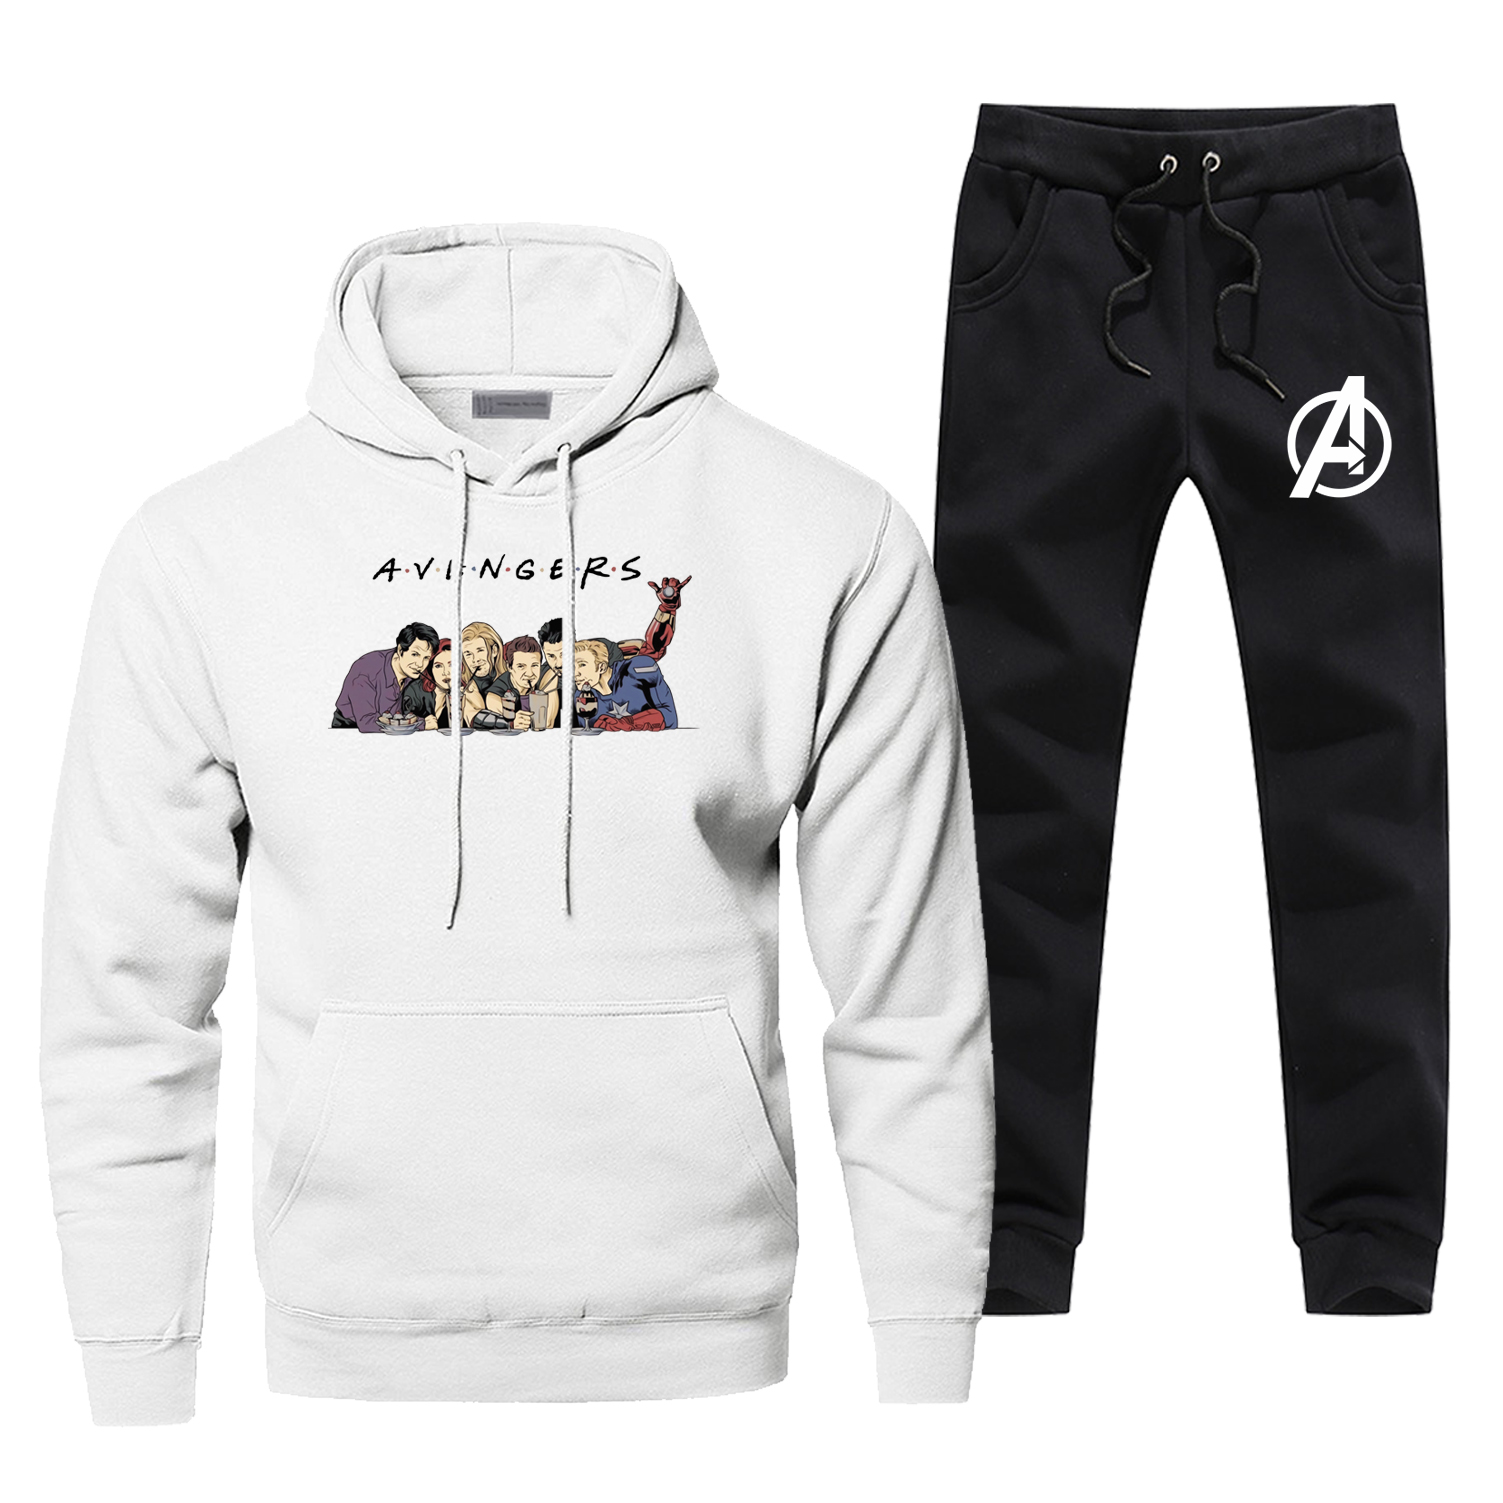 The Avengers Friends Hoodies Pants Men Sets Track Suit Set Tops Pant Sweatshirt Sweatpants Sportswear Autumn 2 PCS Tracksuit